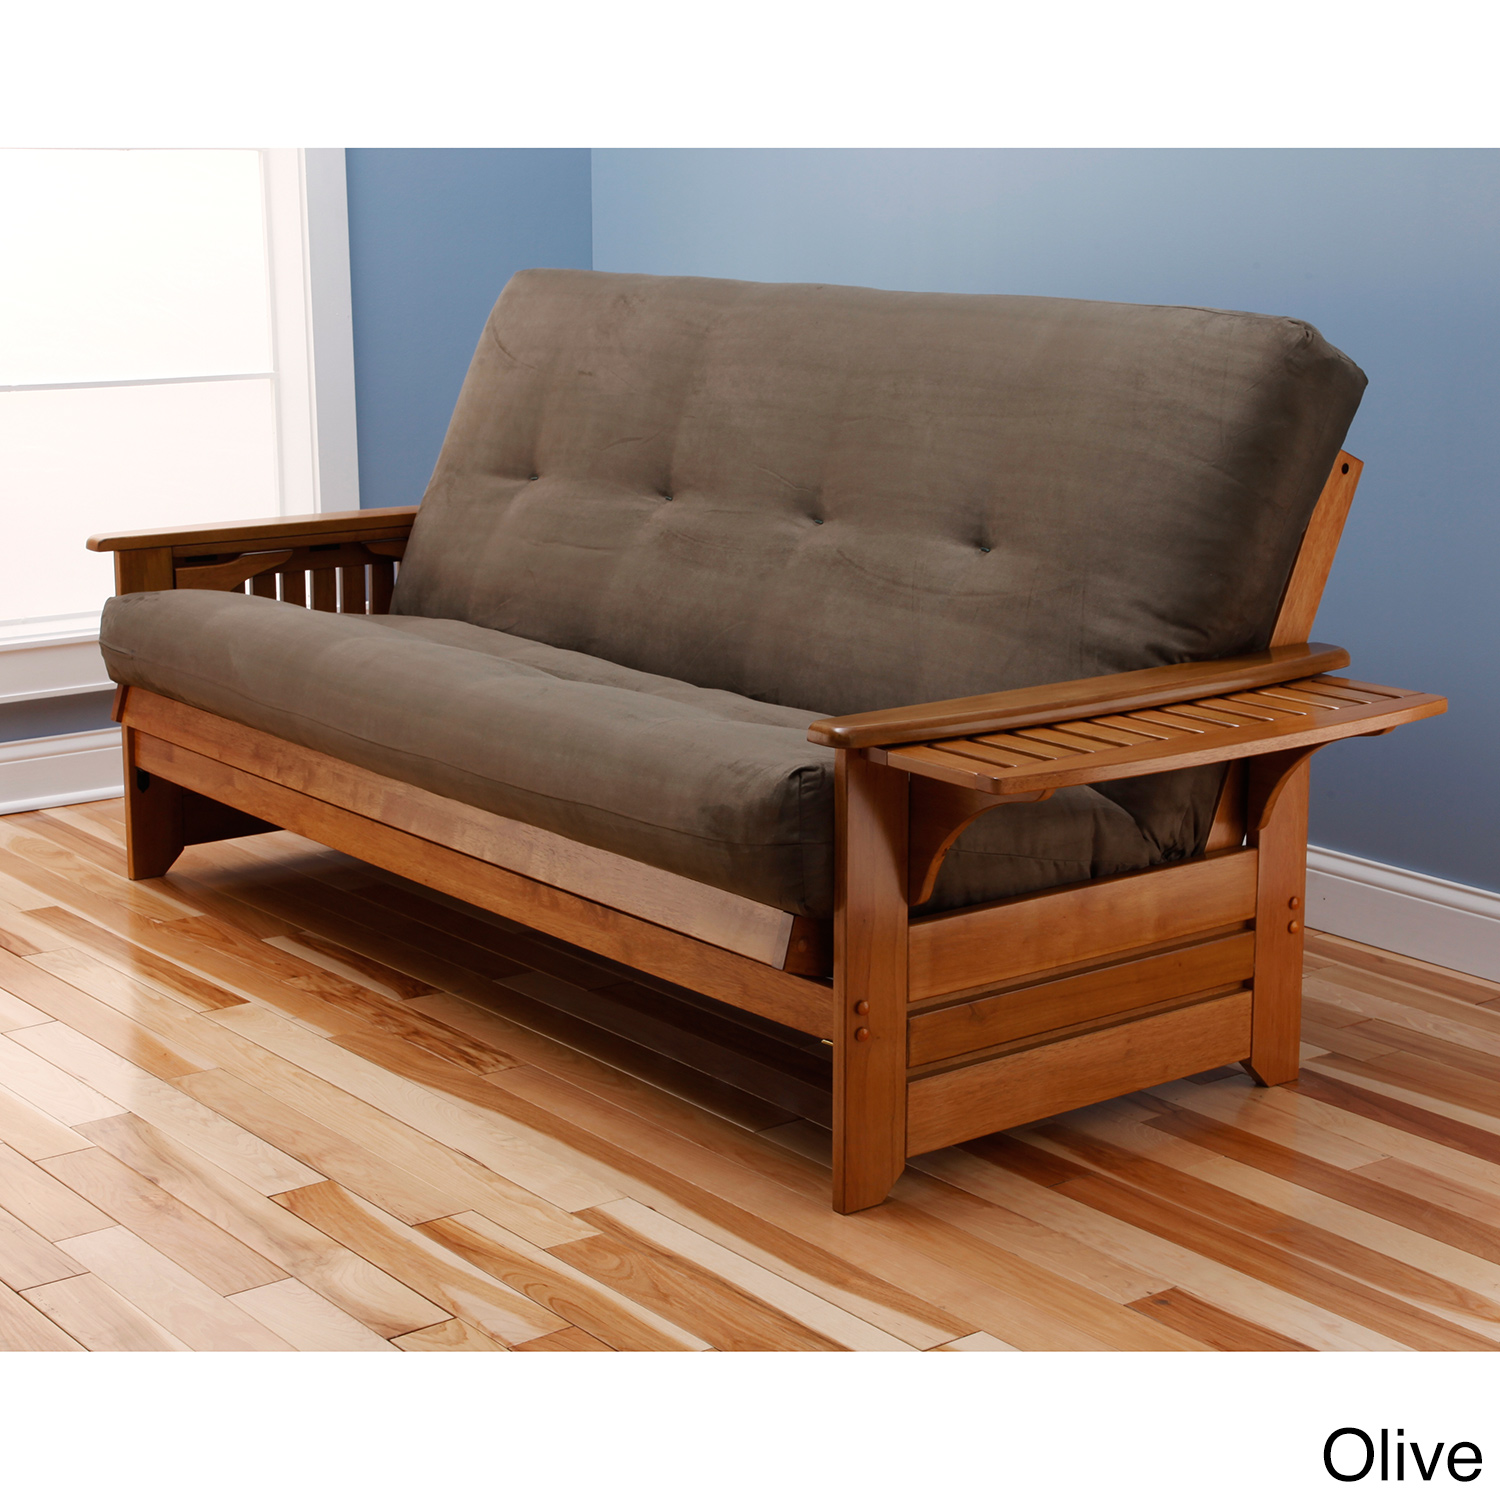 Somette Ali Phonics Multi flex Honey Oak Full size Wood Futon